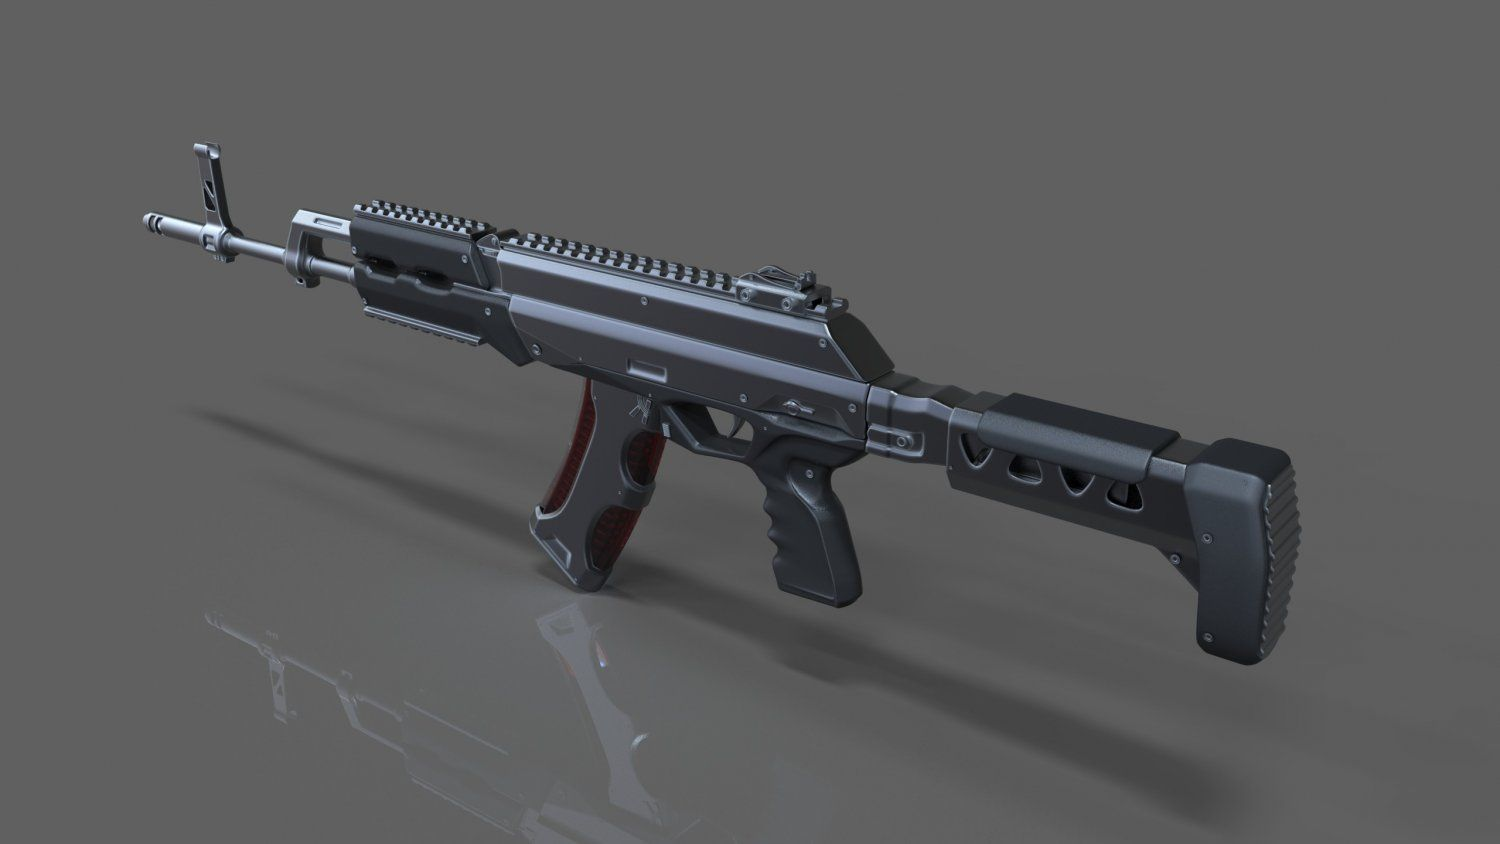 Royalty free AK 15 Concept 3D Model by setlikolus  Available